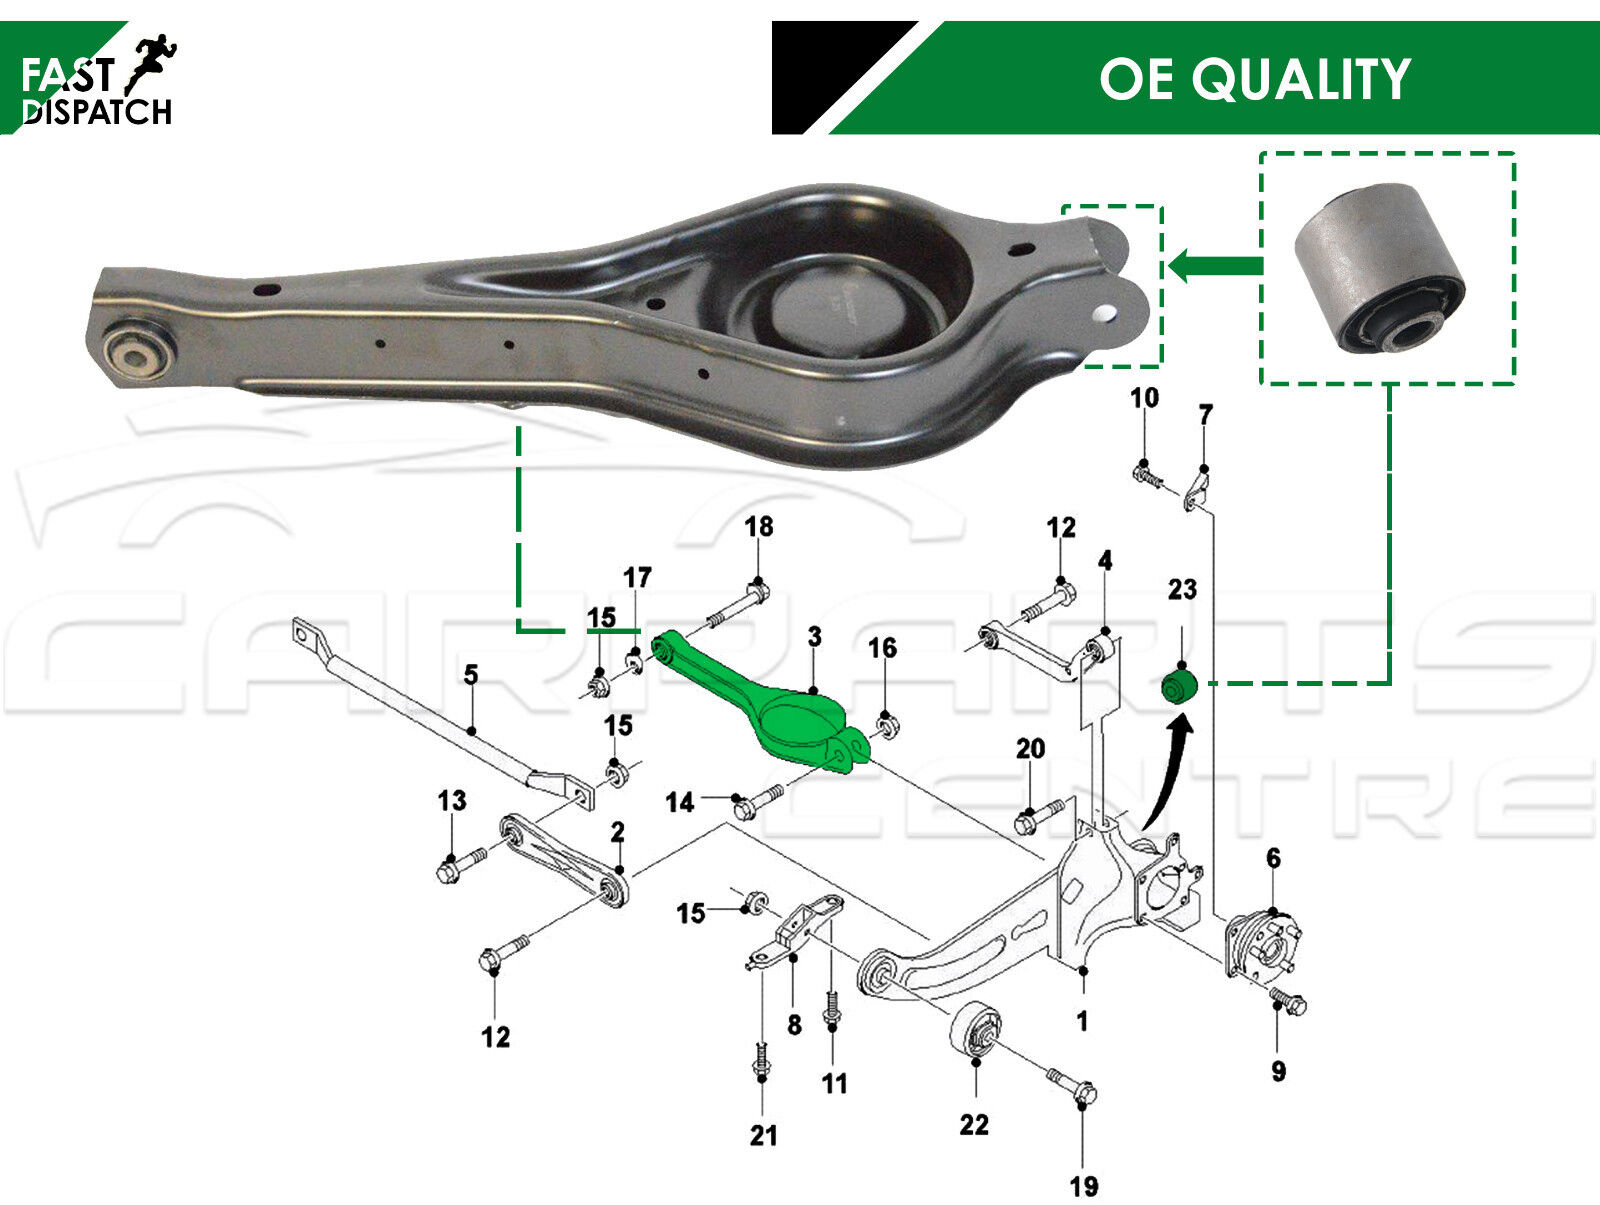 FITS FORD MONDEO 2007/> REAR LOWER TRAILING ARM SUSPENSION BUSHS FAST DISPATCH